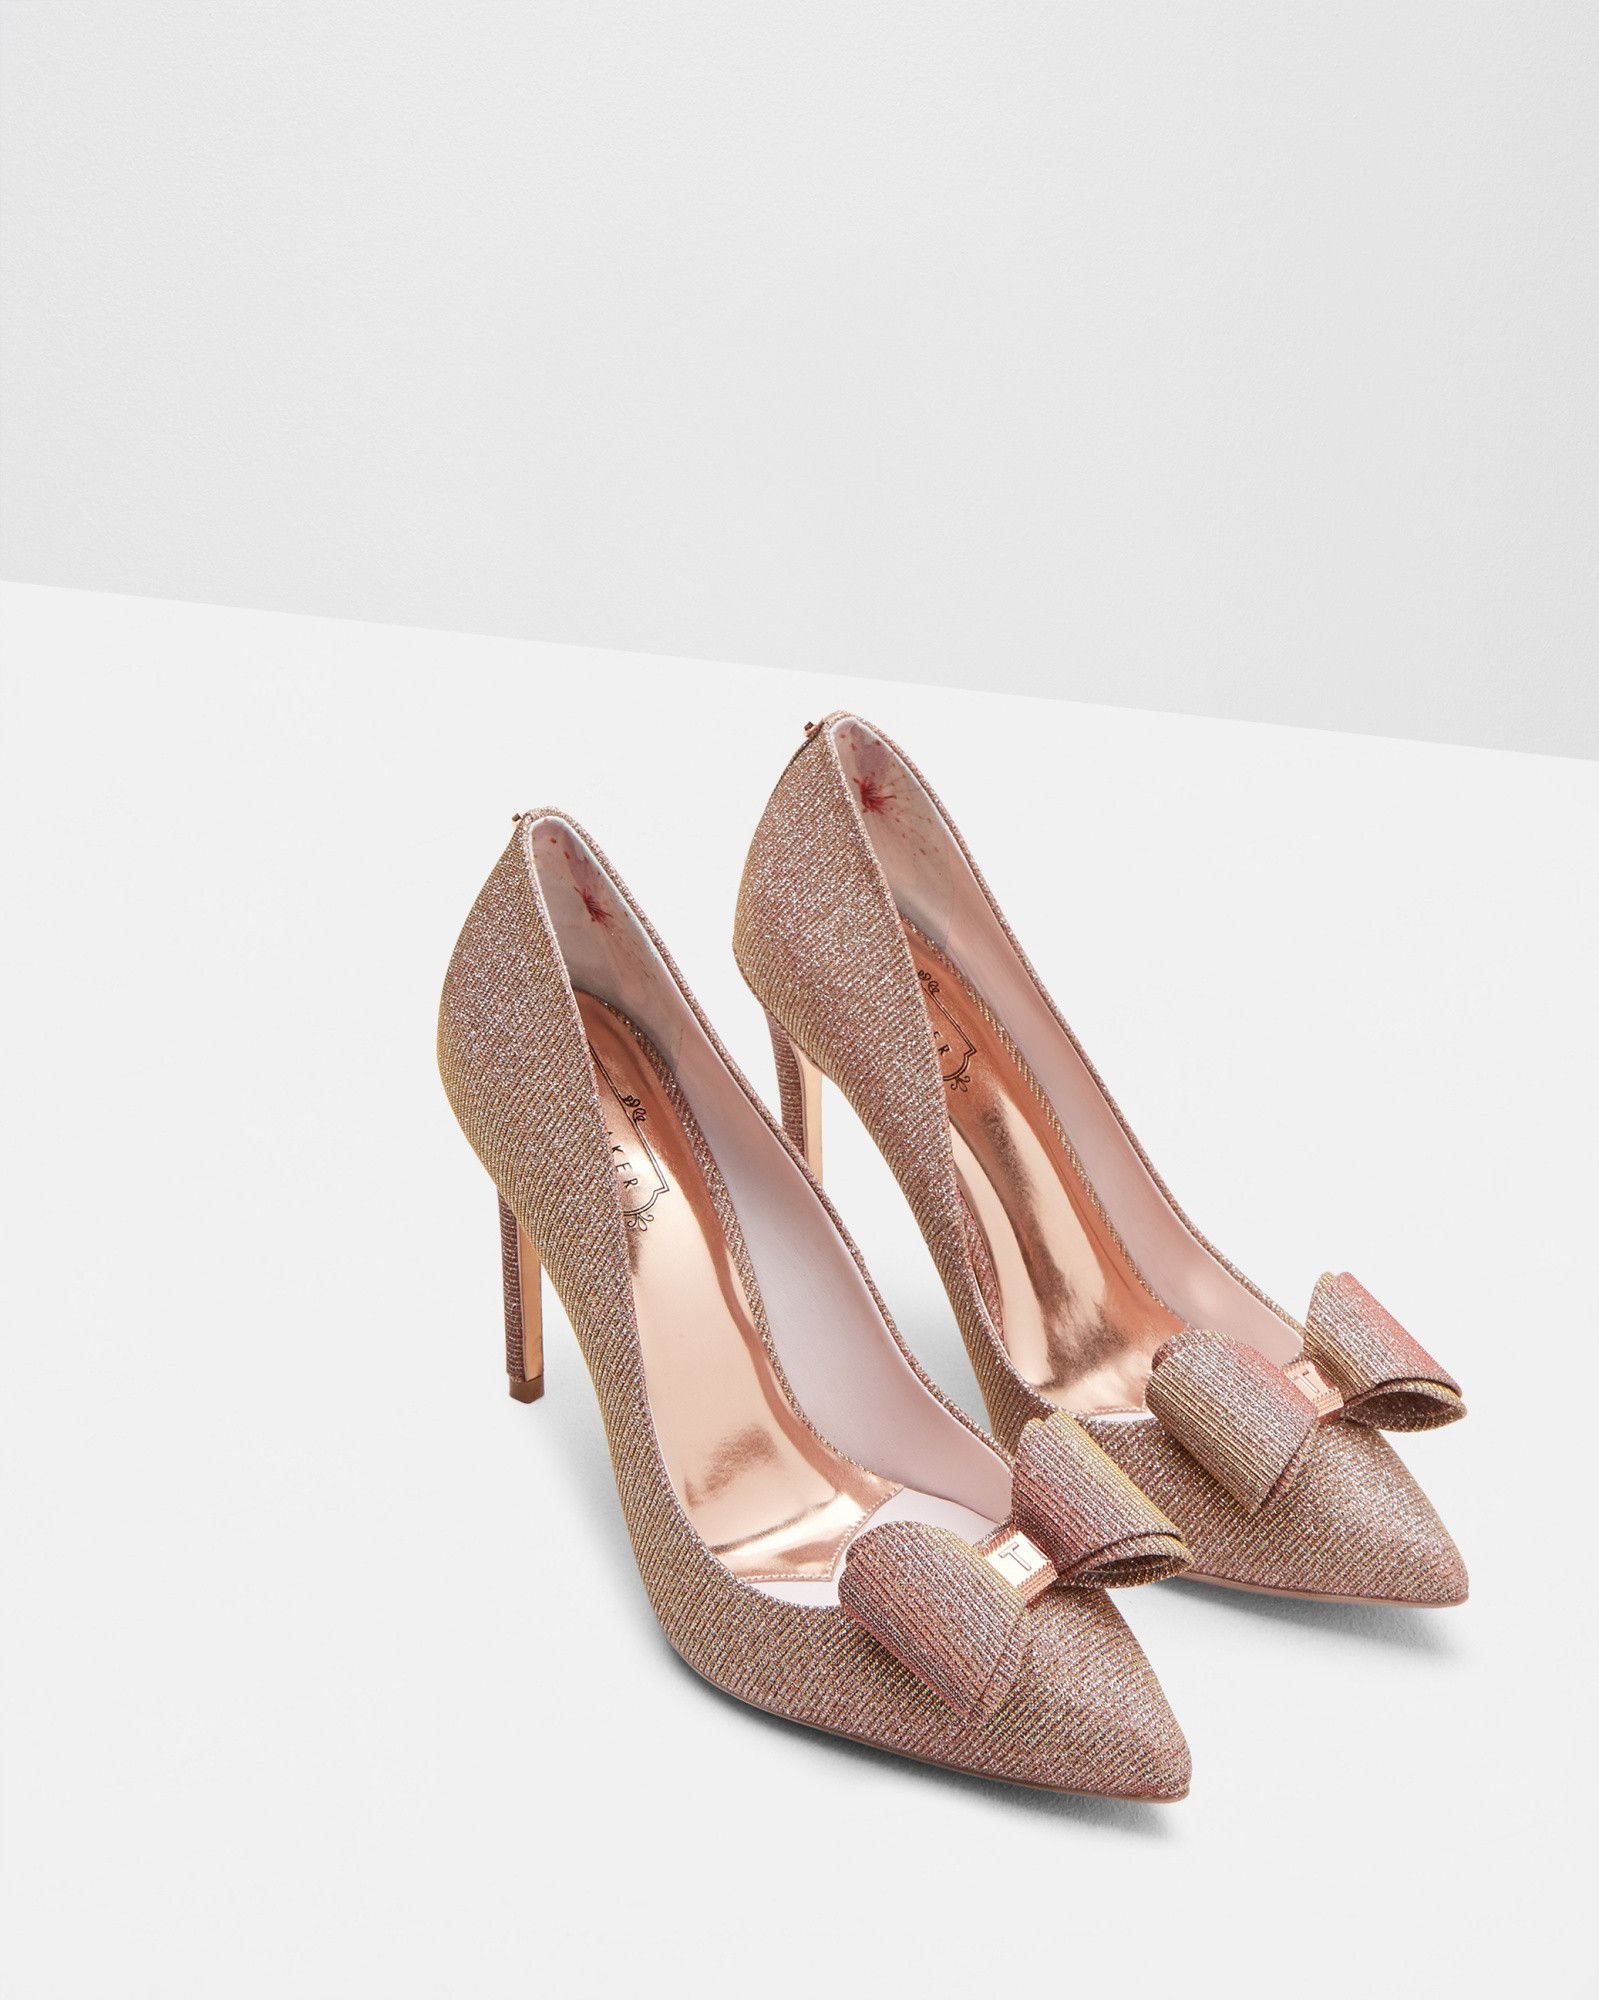 Bow Detail Courts Rose Gold Shoes Ted Baker Dress Shoes Womens Rose Gold Shoes Ted Baker Shoes